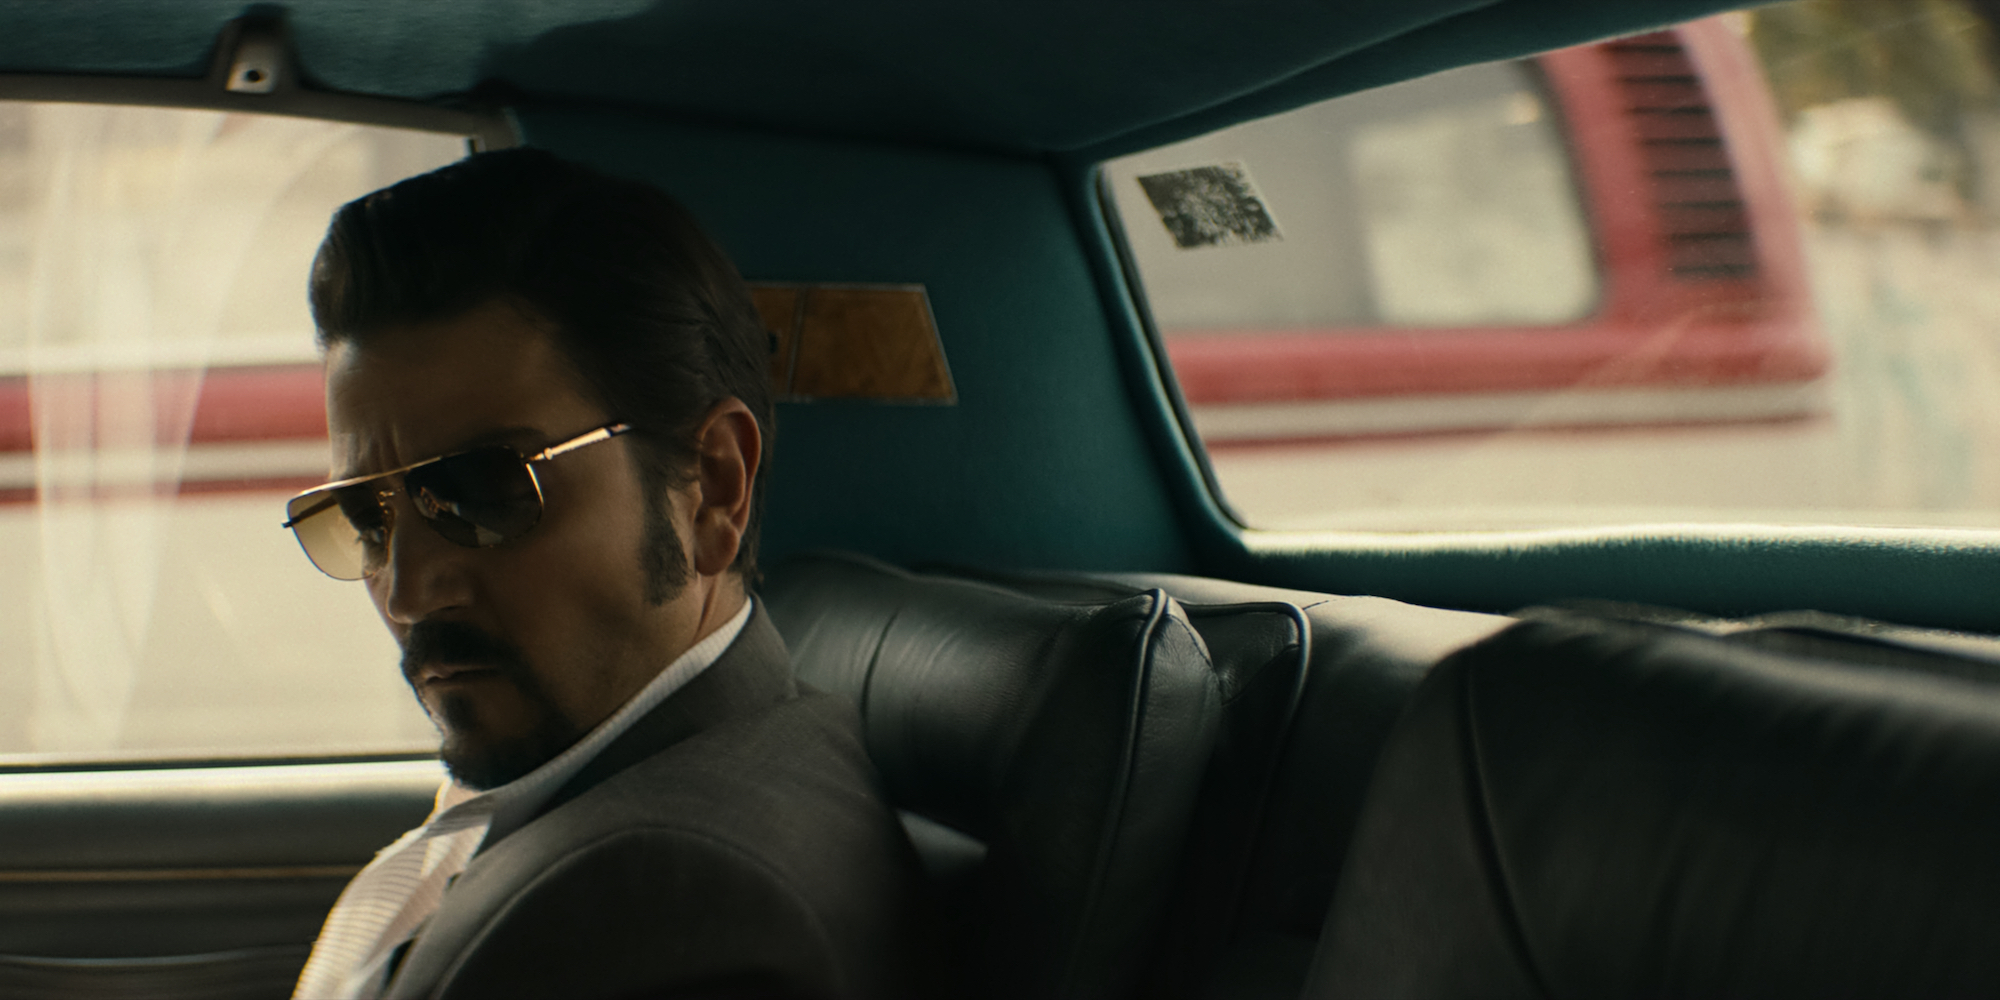 'Narcos: Mexico' Season 2 Trailer Drops and Diego Luna Isn't Safe